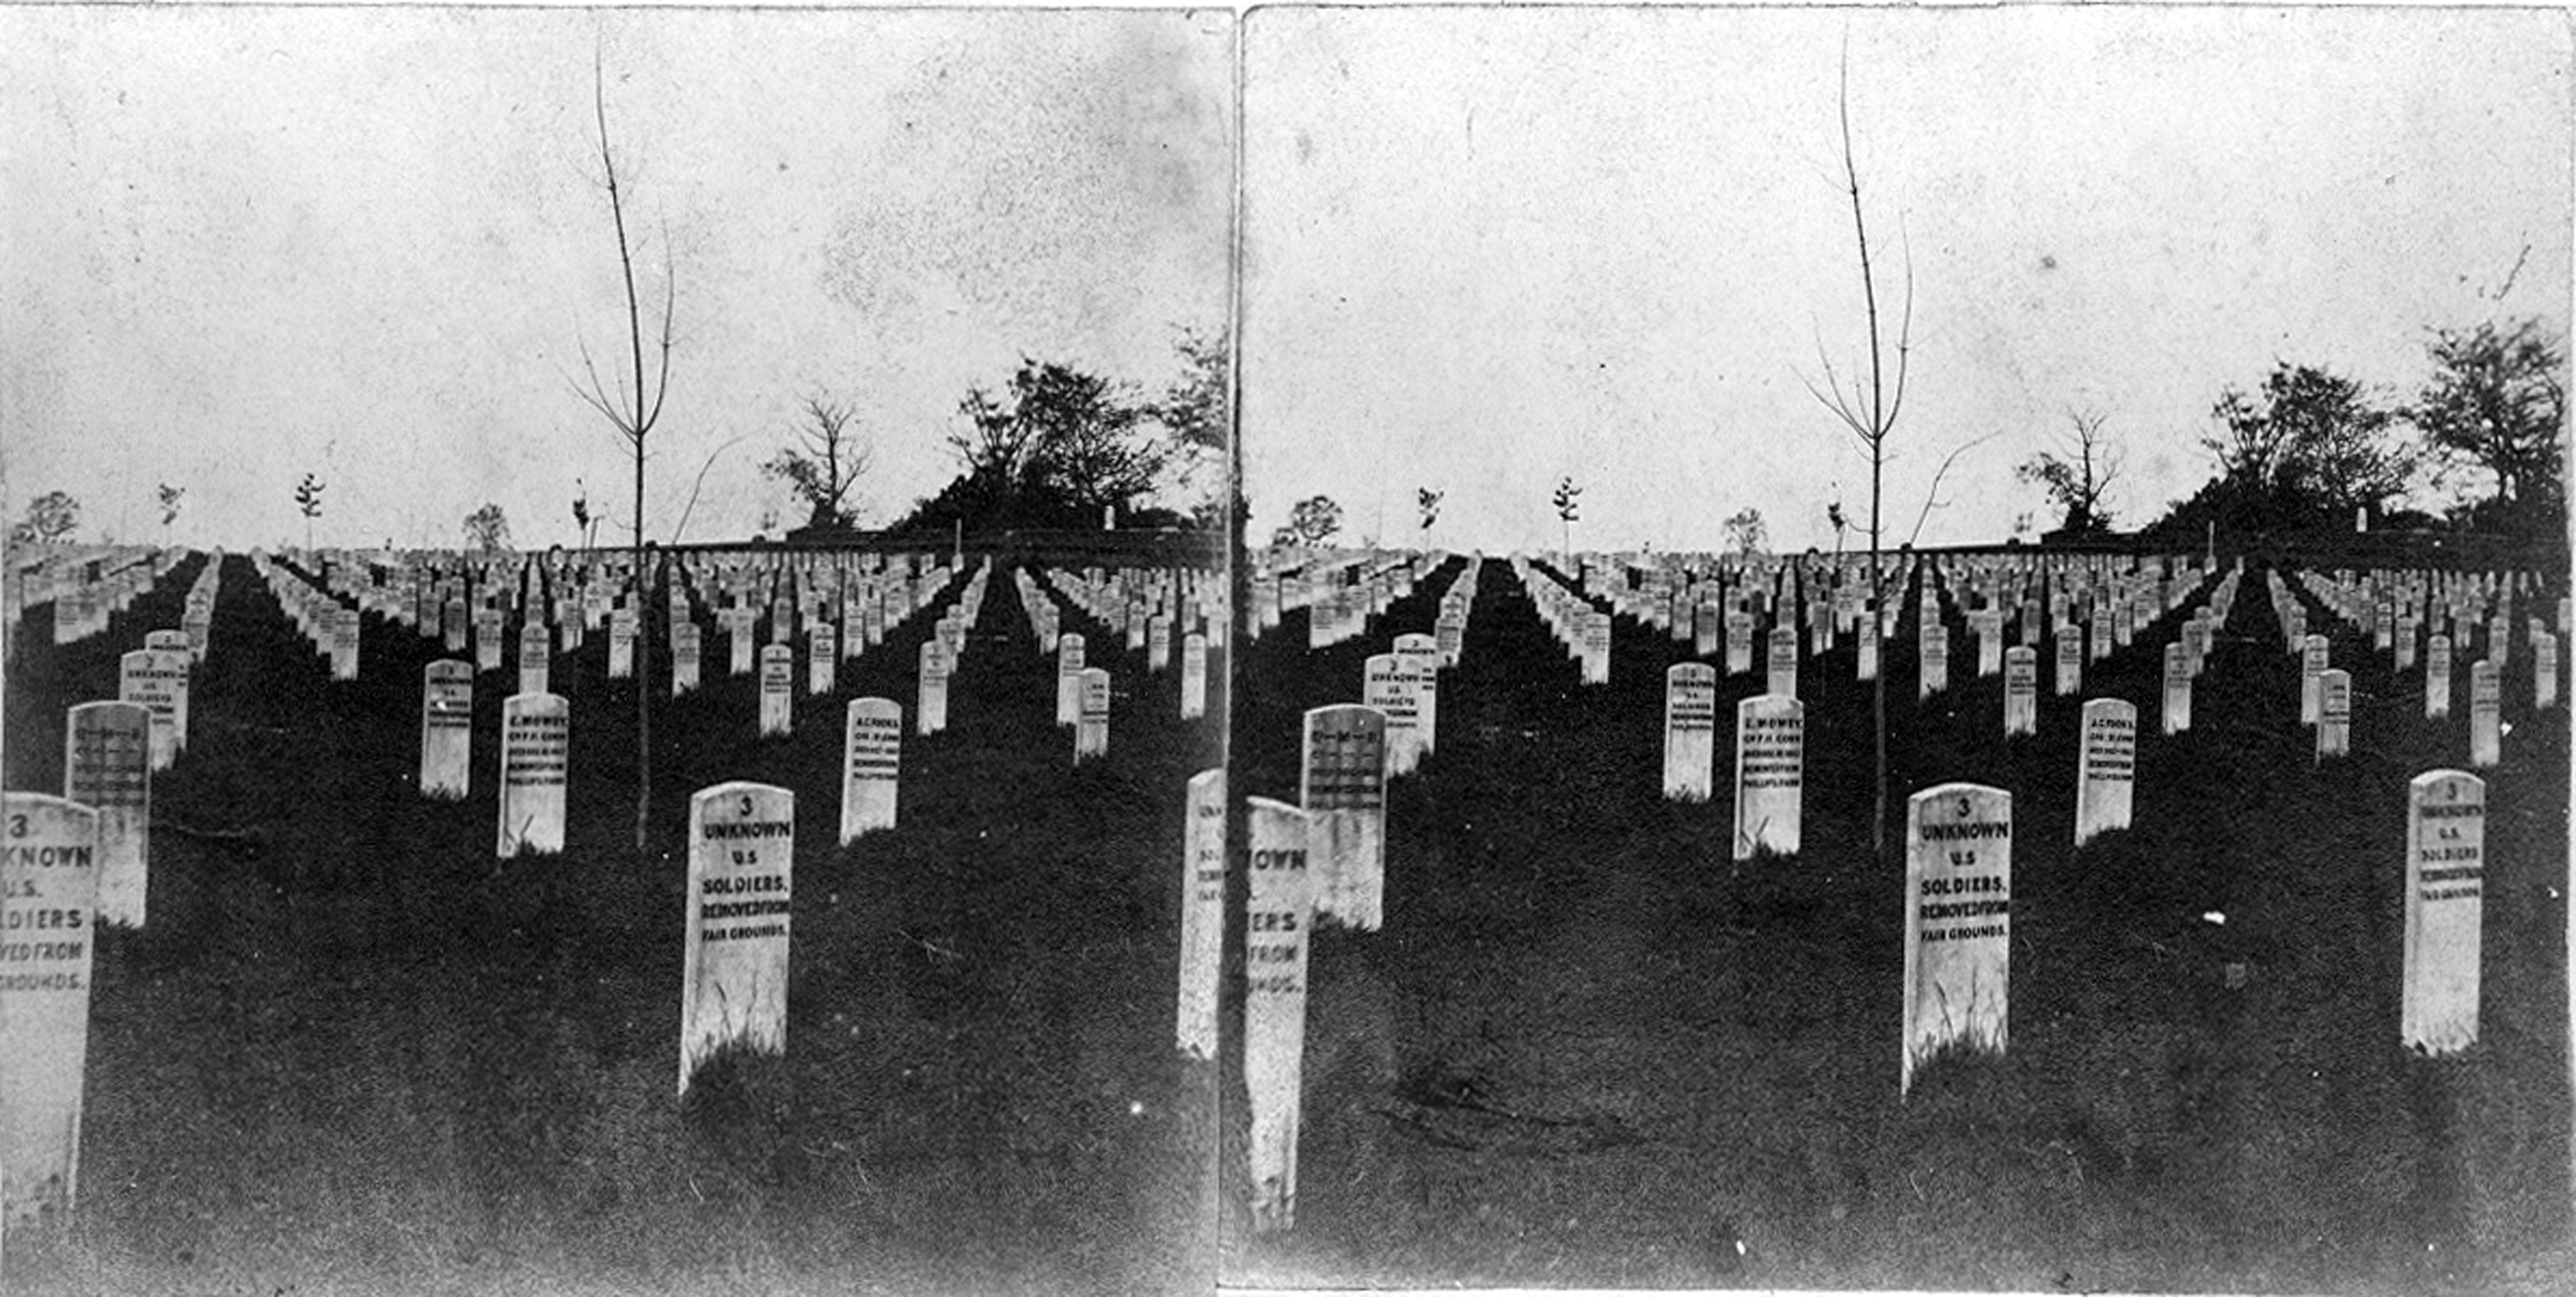 Black and white photo showing stark landscape with wooden white headboards in rows